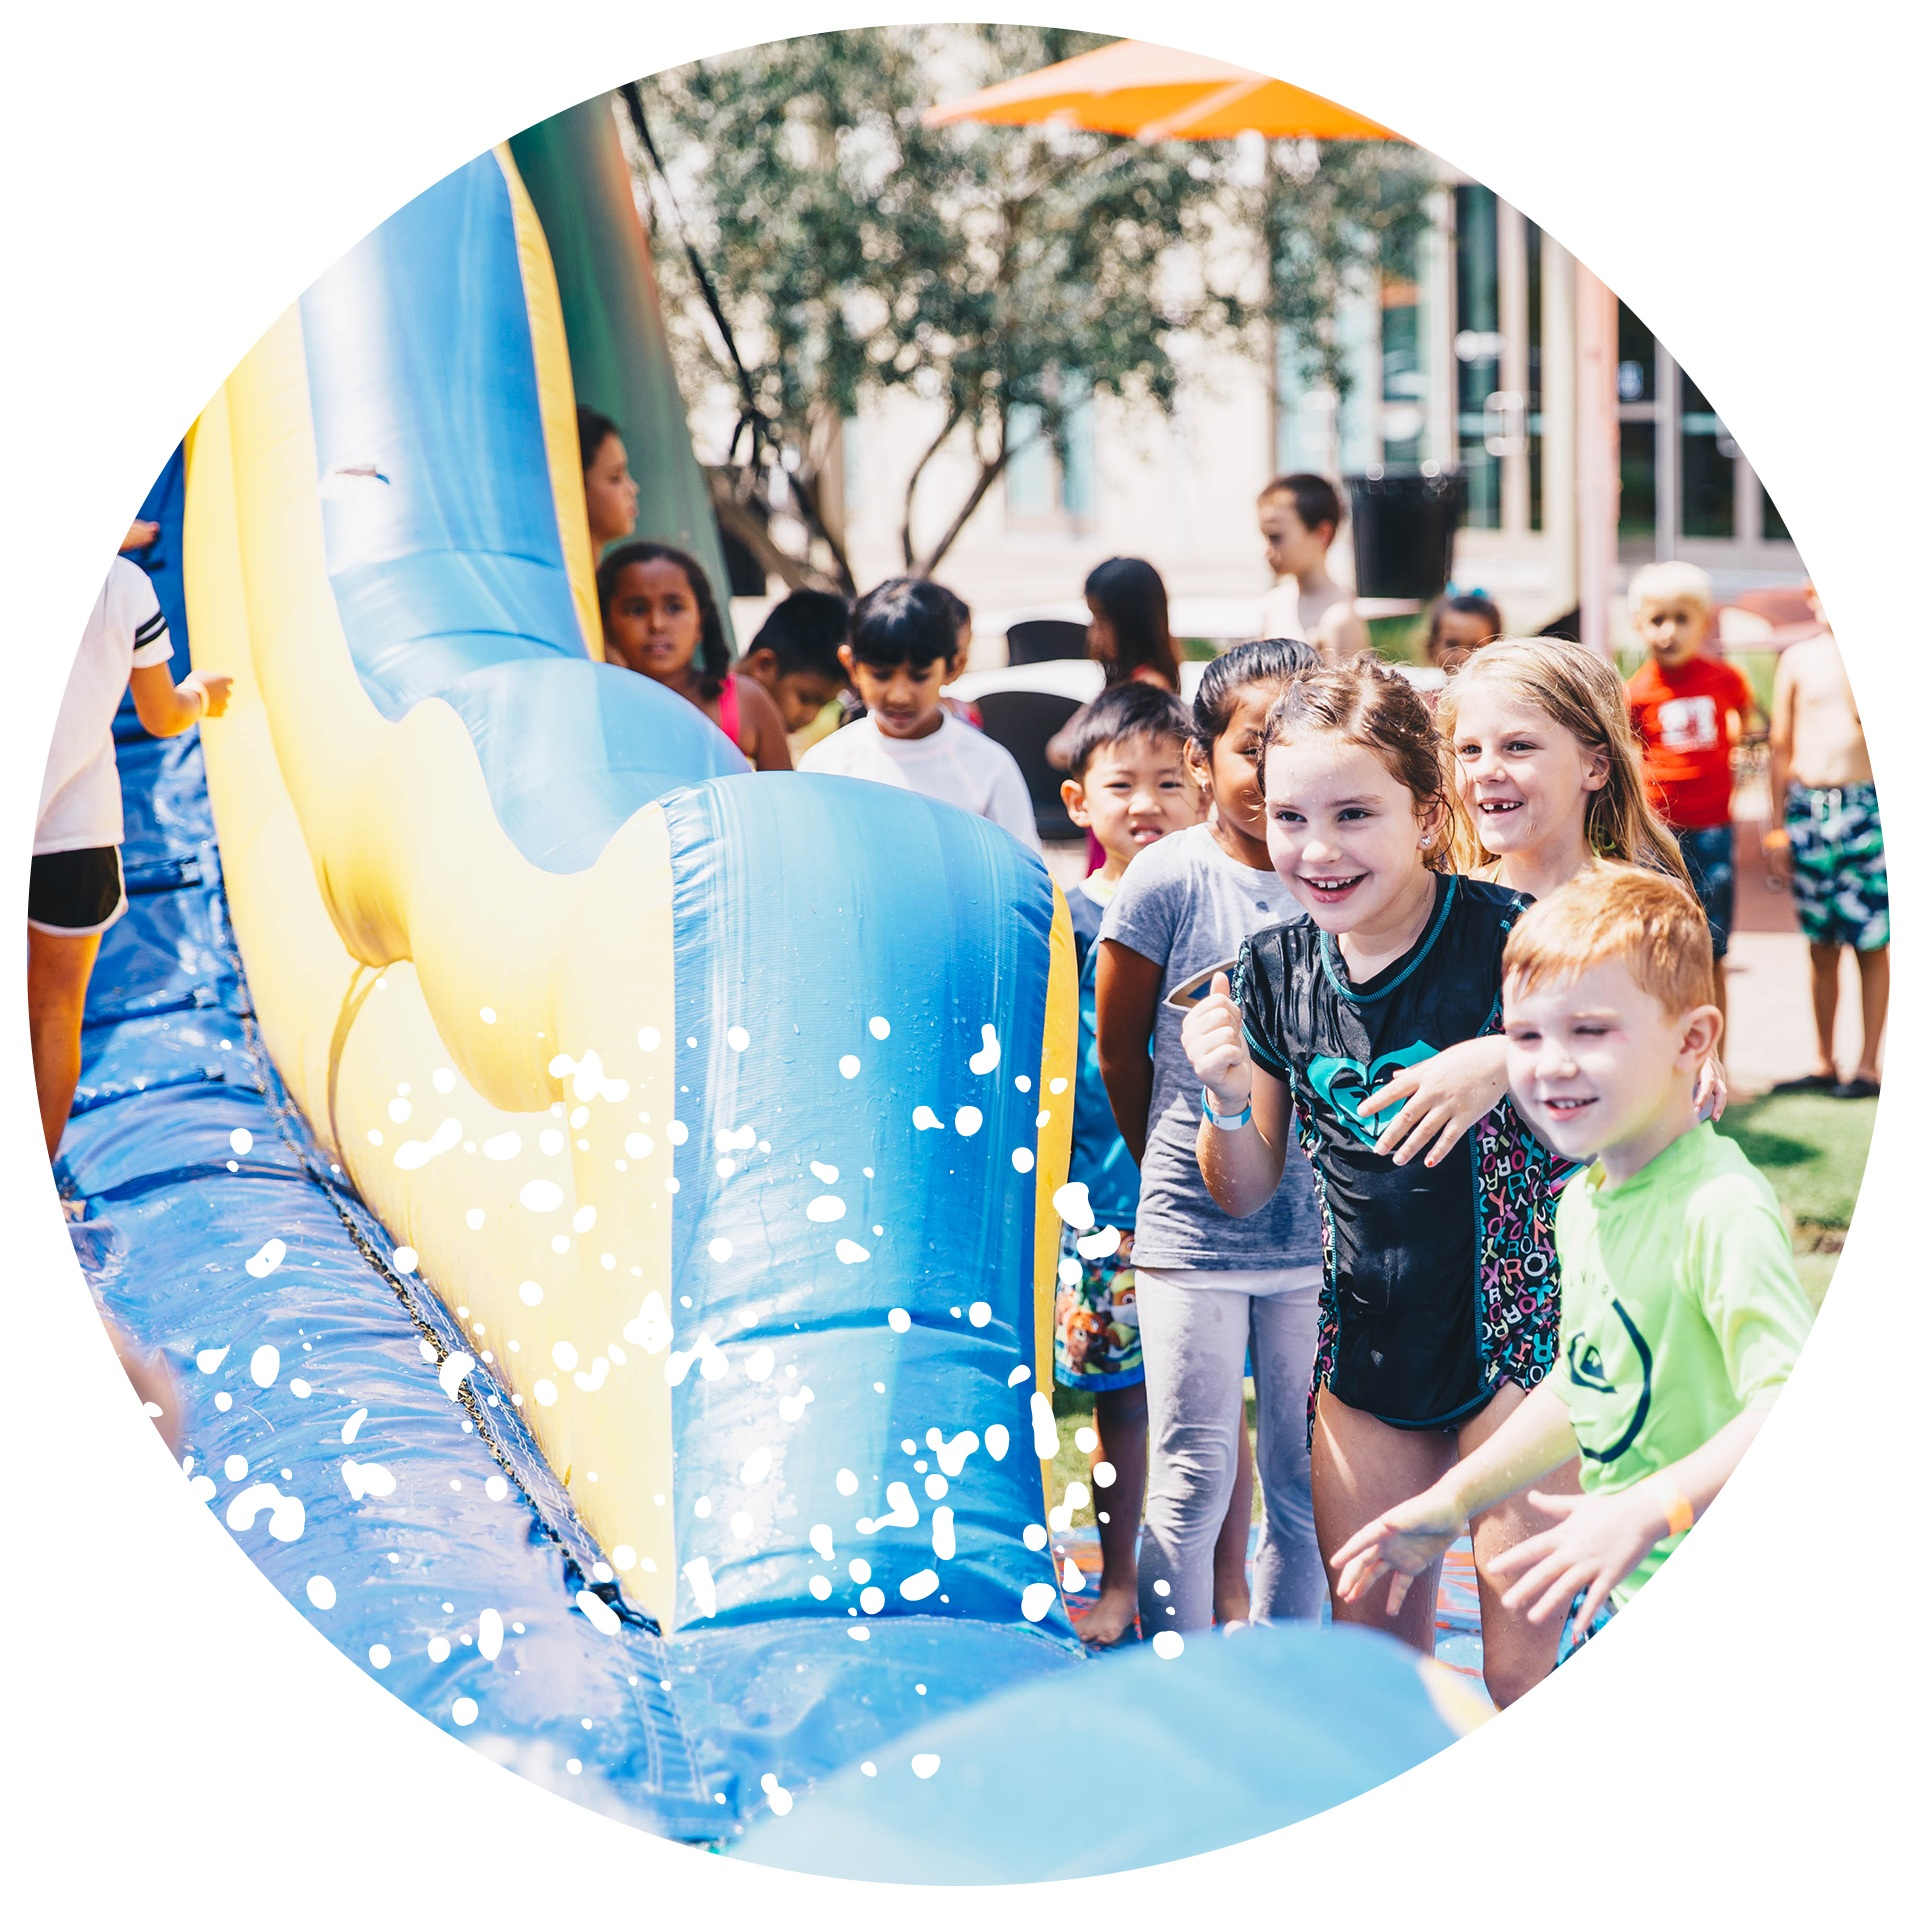 Water Weekend - August 10/11 - Because one is never enough, get ready for our second water weekend. Bring your Preschool and Elementary kids in bathing suits for an epic time! On all our campuses, and during every weekend service.